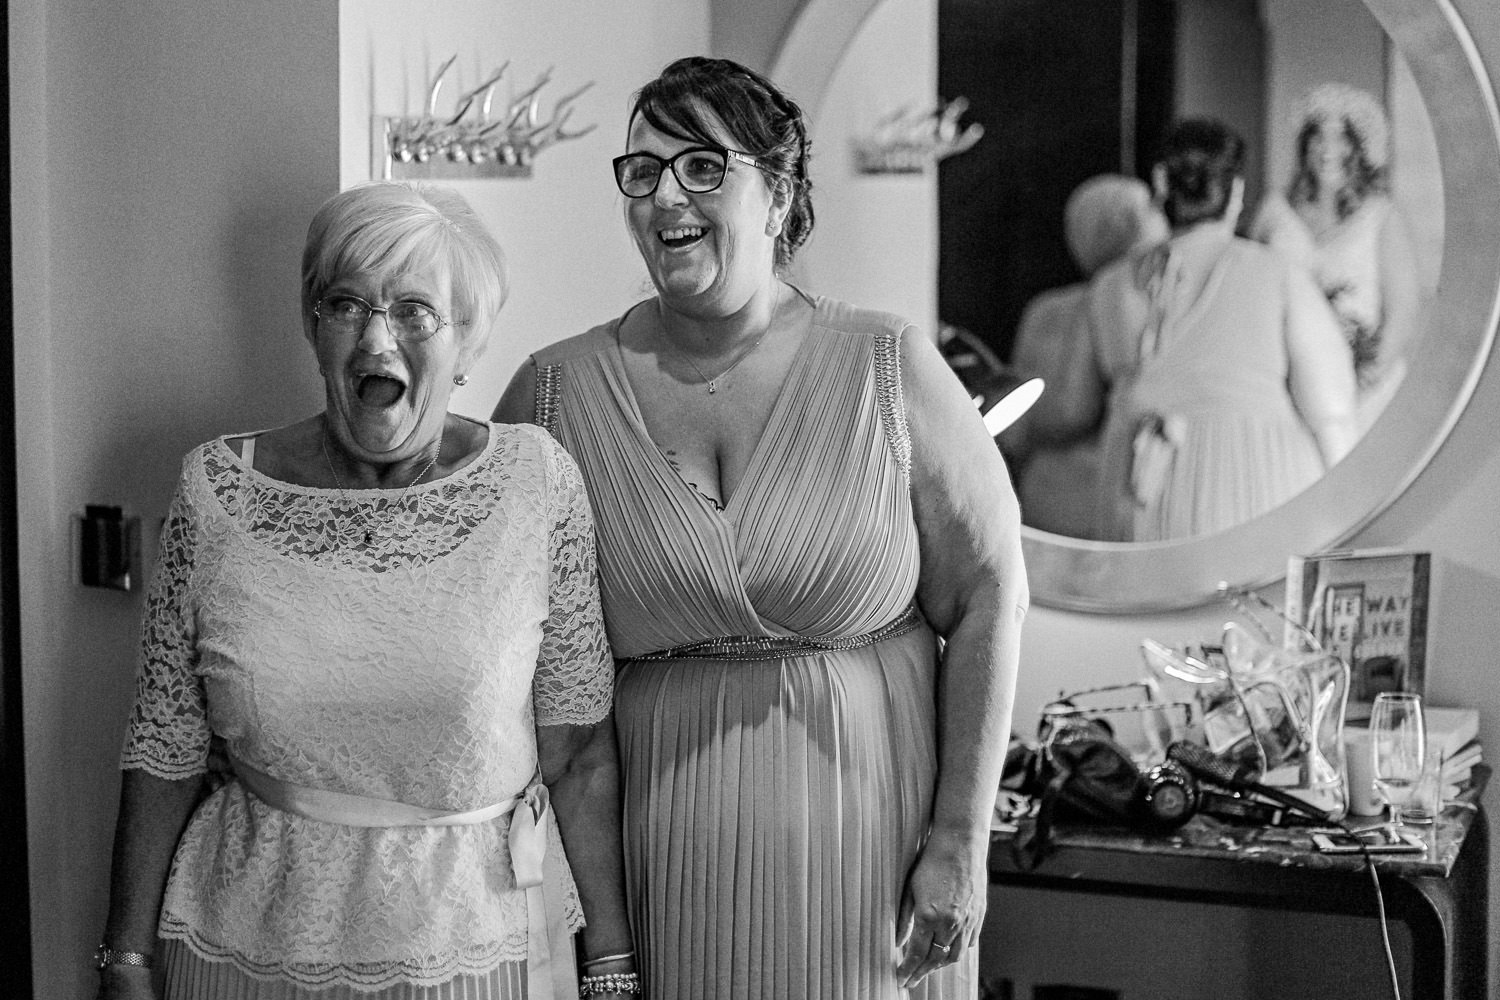 Shocked happy reactions from mother of bride Wedding reception Rustic wedding at Meols Hall Southport